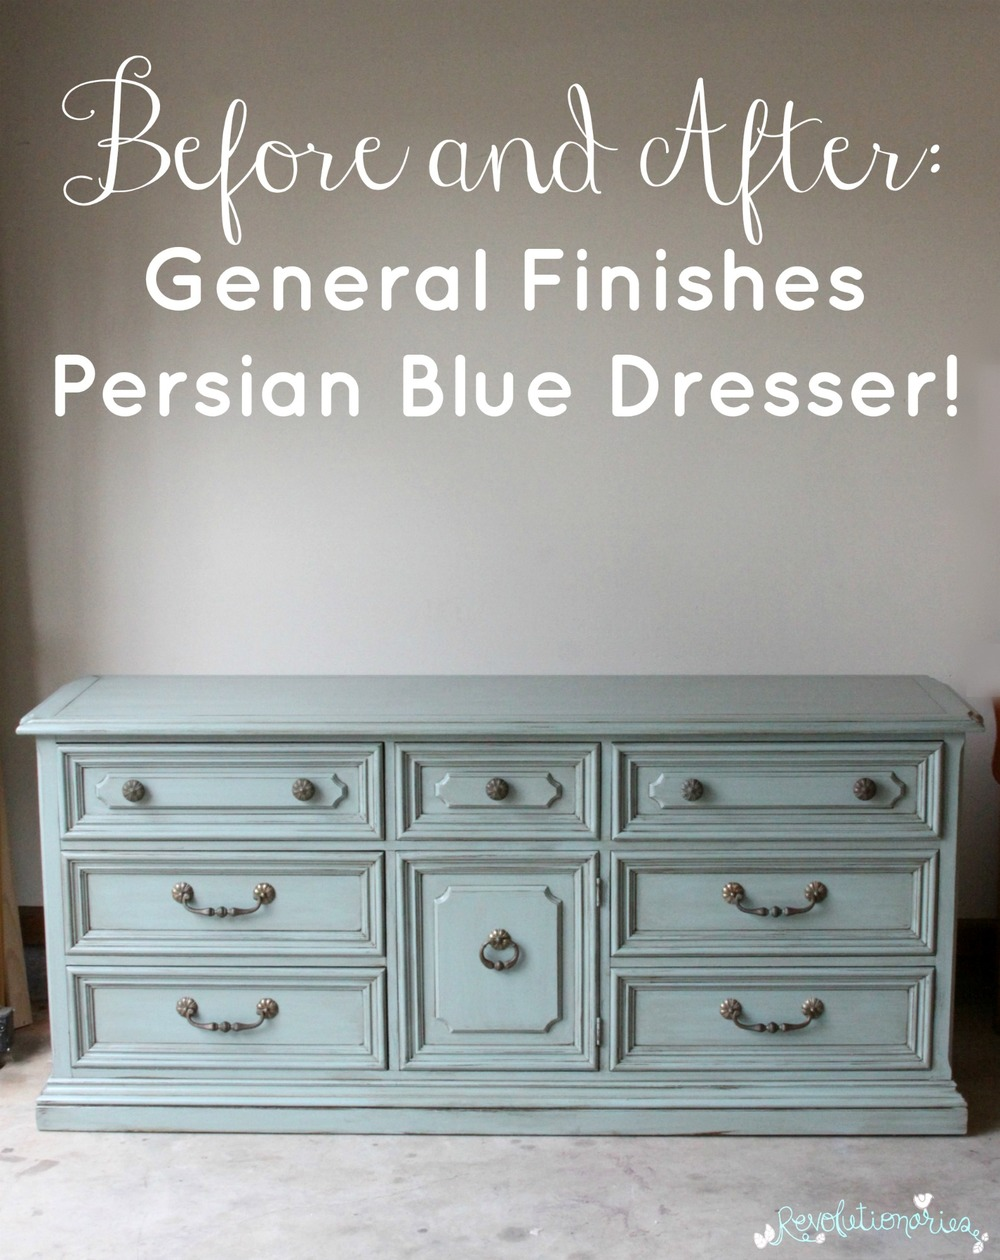 before-and-after-general-finishes-persian-blue-dresser.jpg